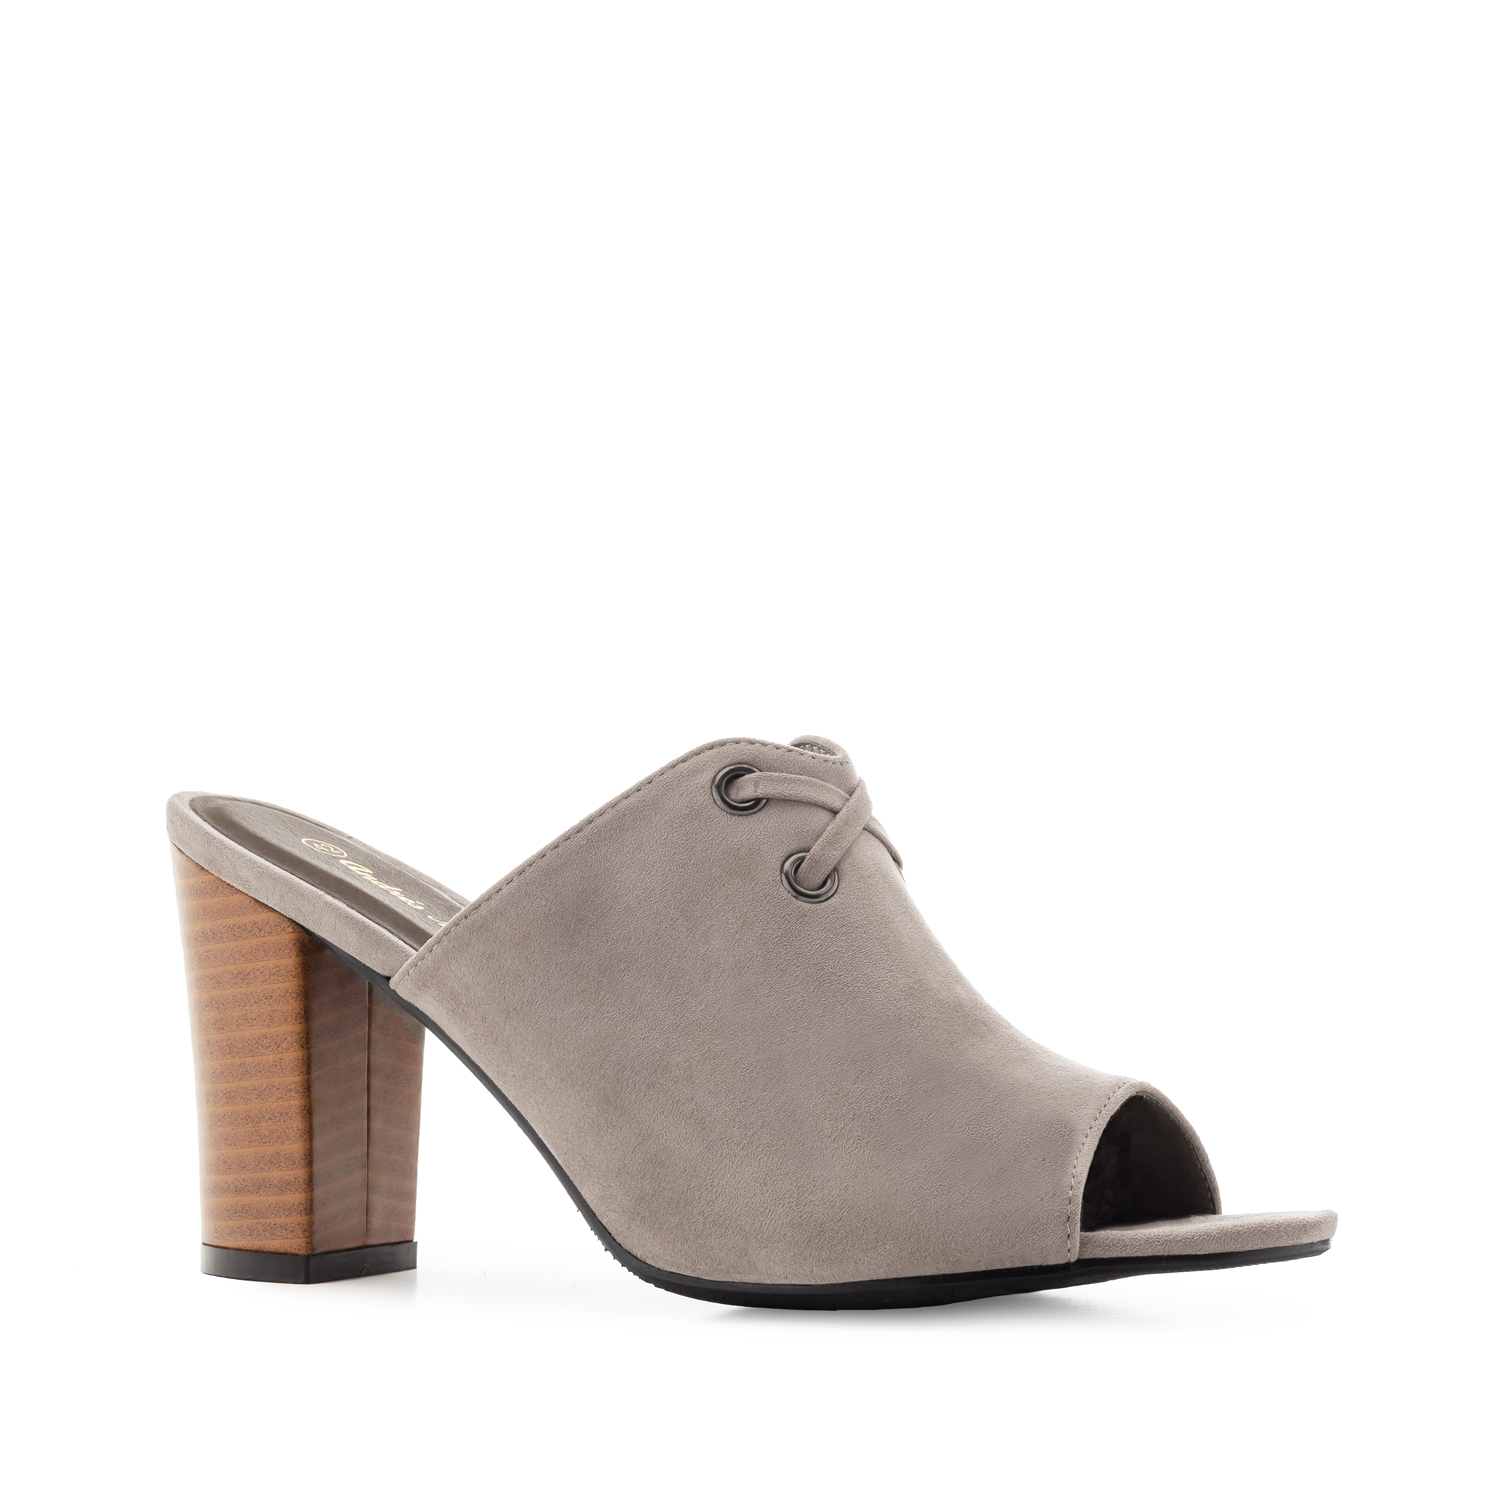 Mules in Grey Suede